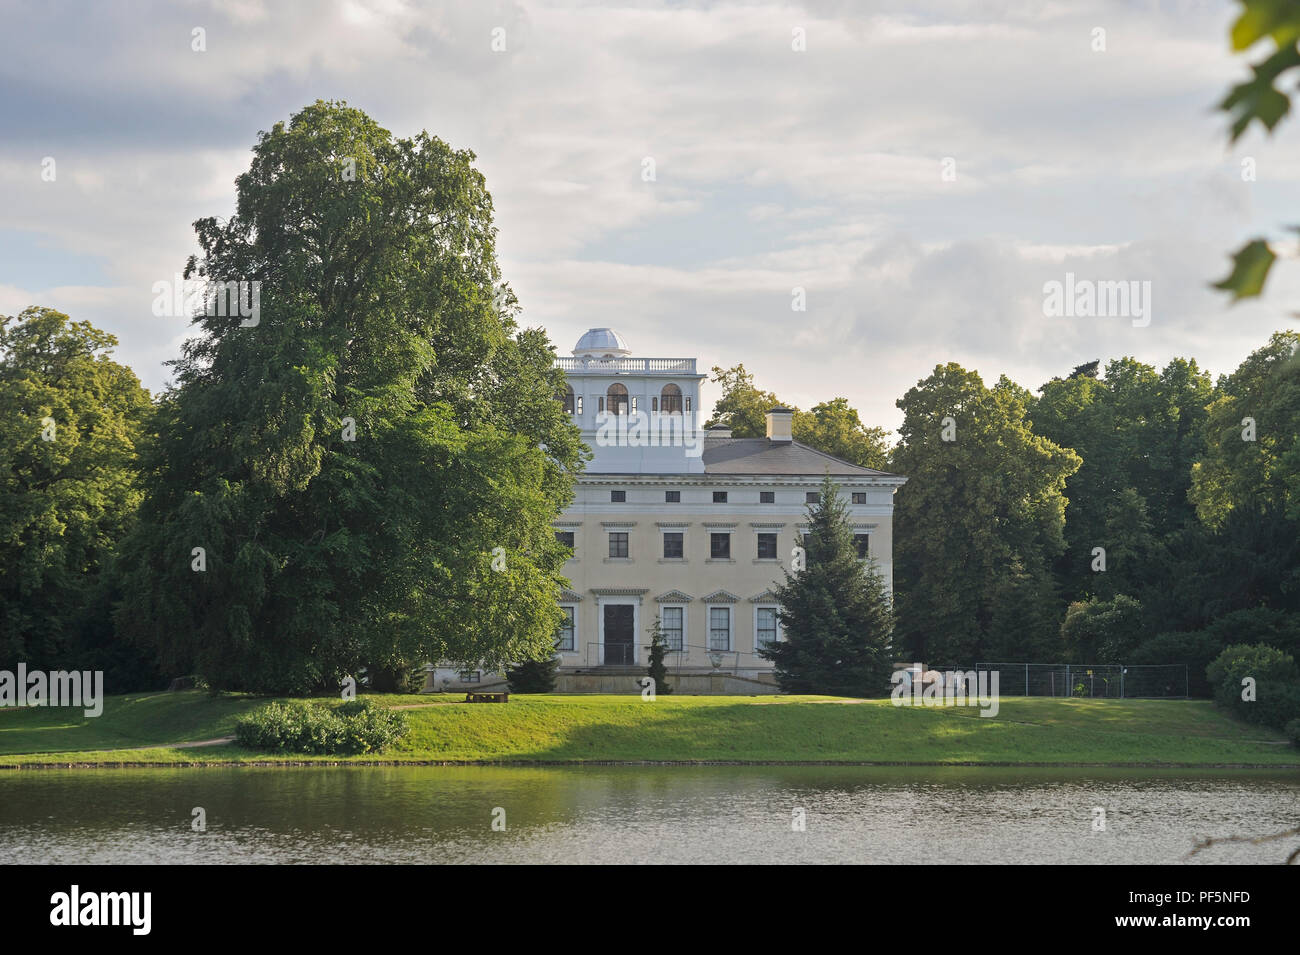 Dessau-Wörlitz Garden Realm, historic parks, view from Lake Woerlitz to Woerlitz palace, Wörlitz, district Wittenberg, Saxony-Anhalt, Germany, Europe - Stock Image